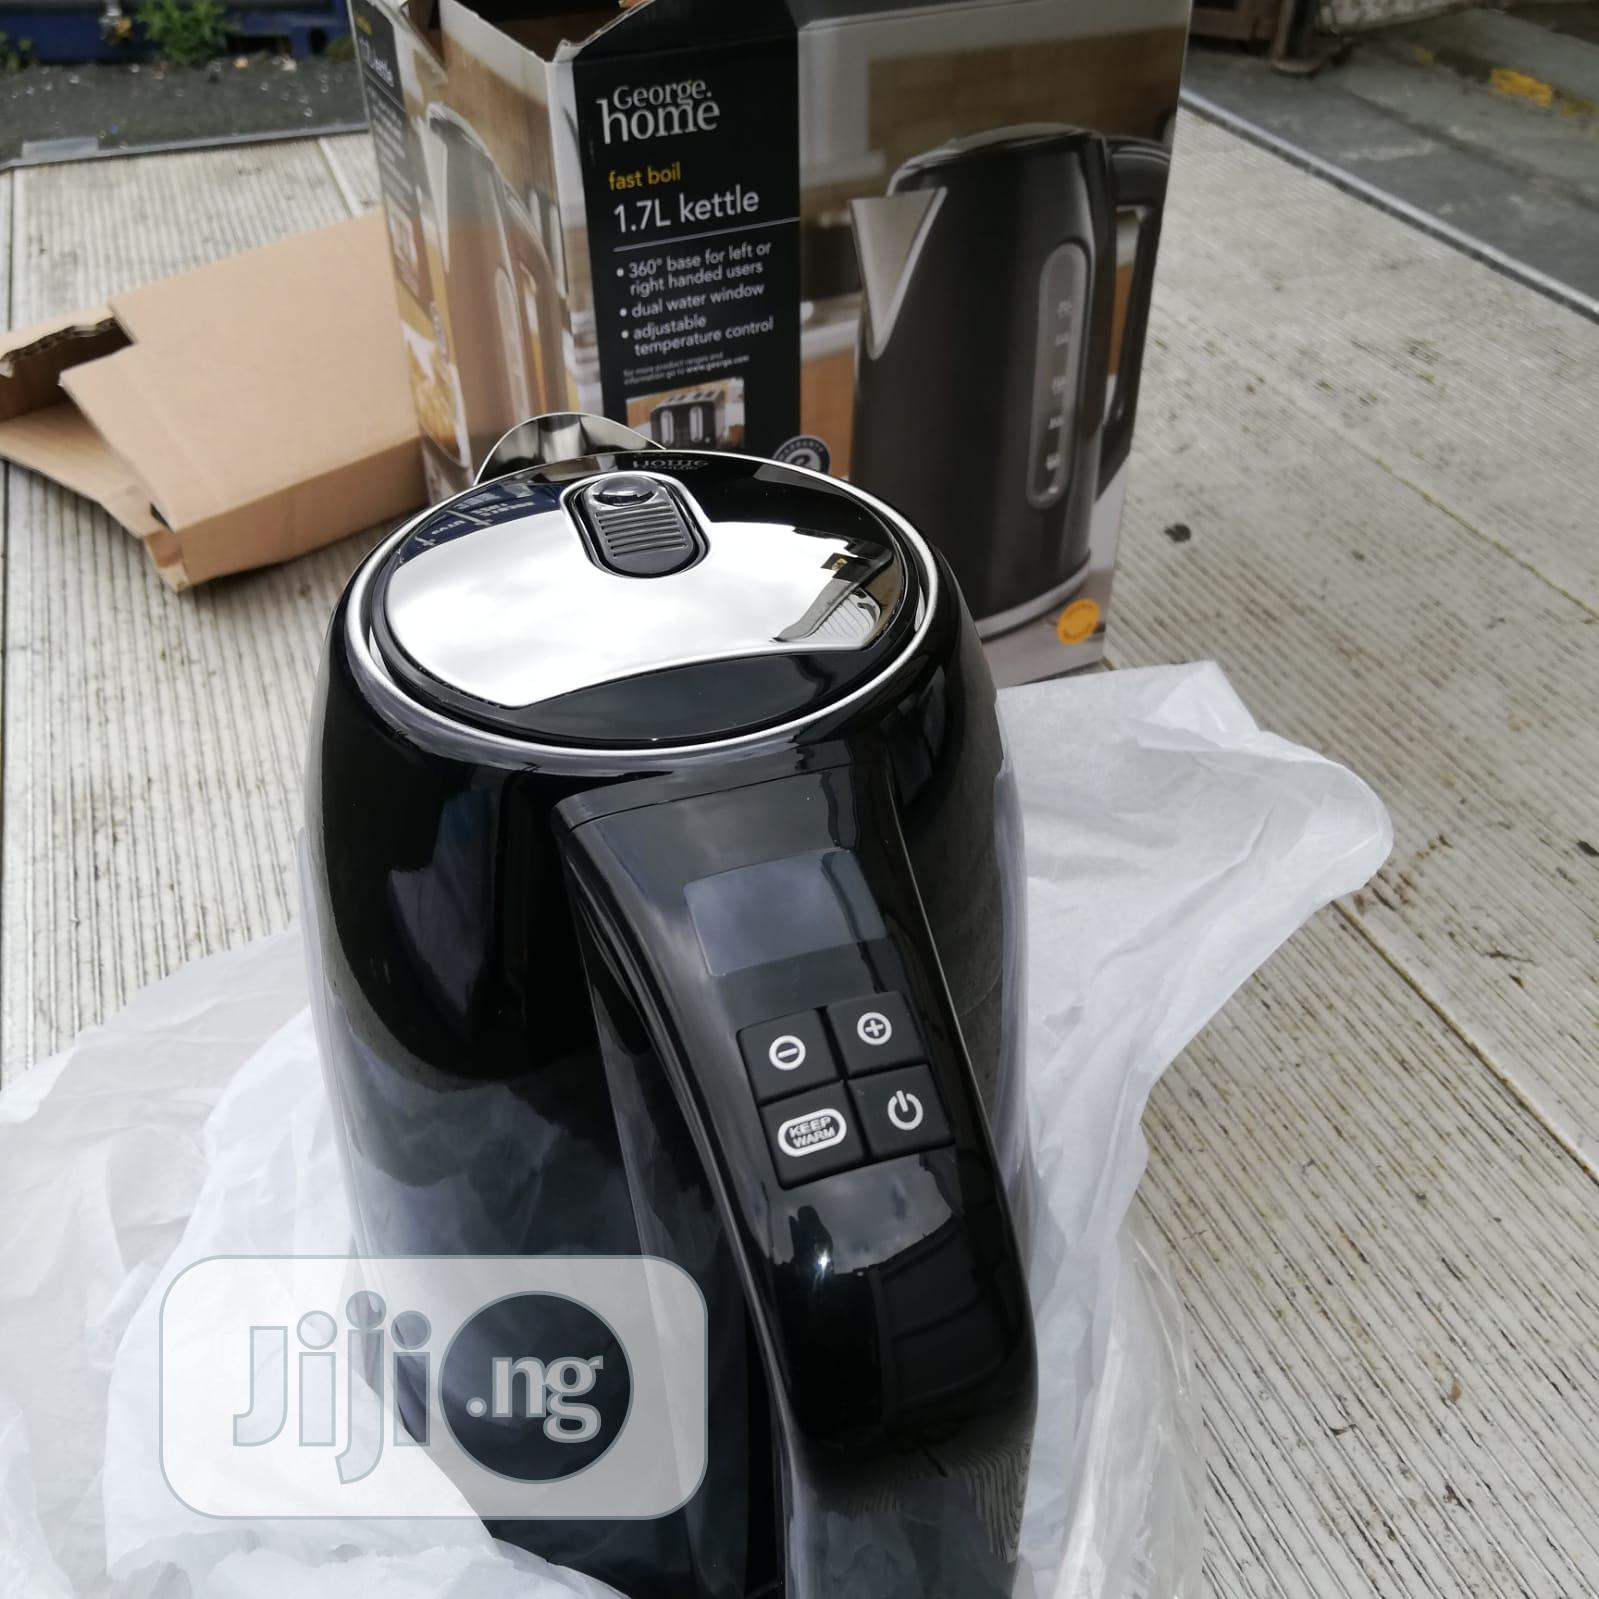 Archive: George Home 1.7L Electric Kettle